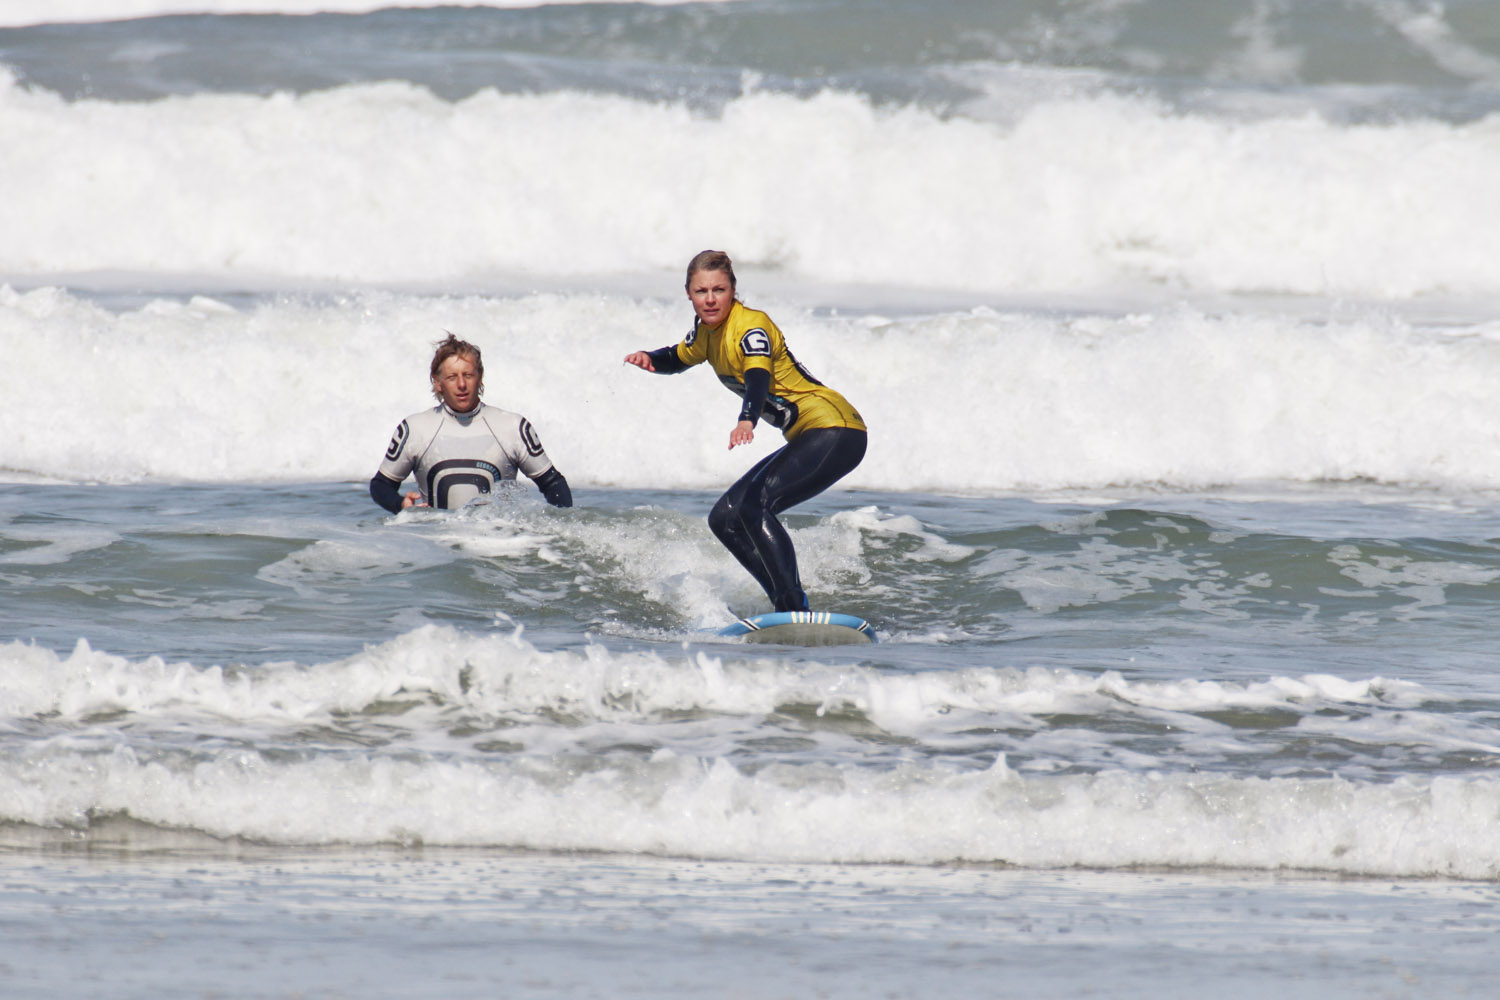 private-surf-lessons-polzeath-georges-surf-school-22